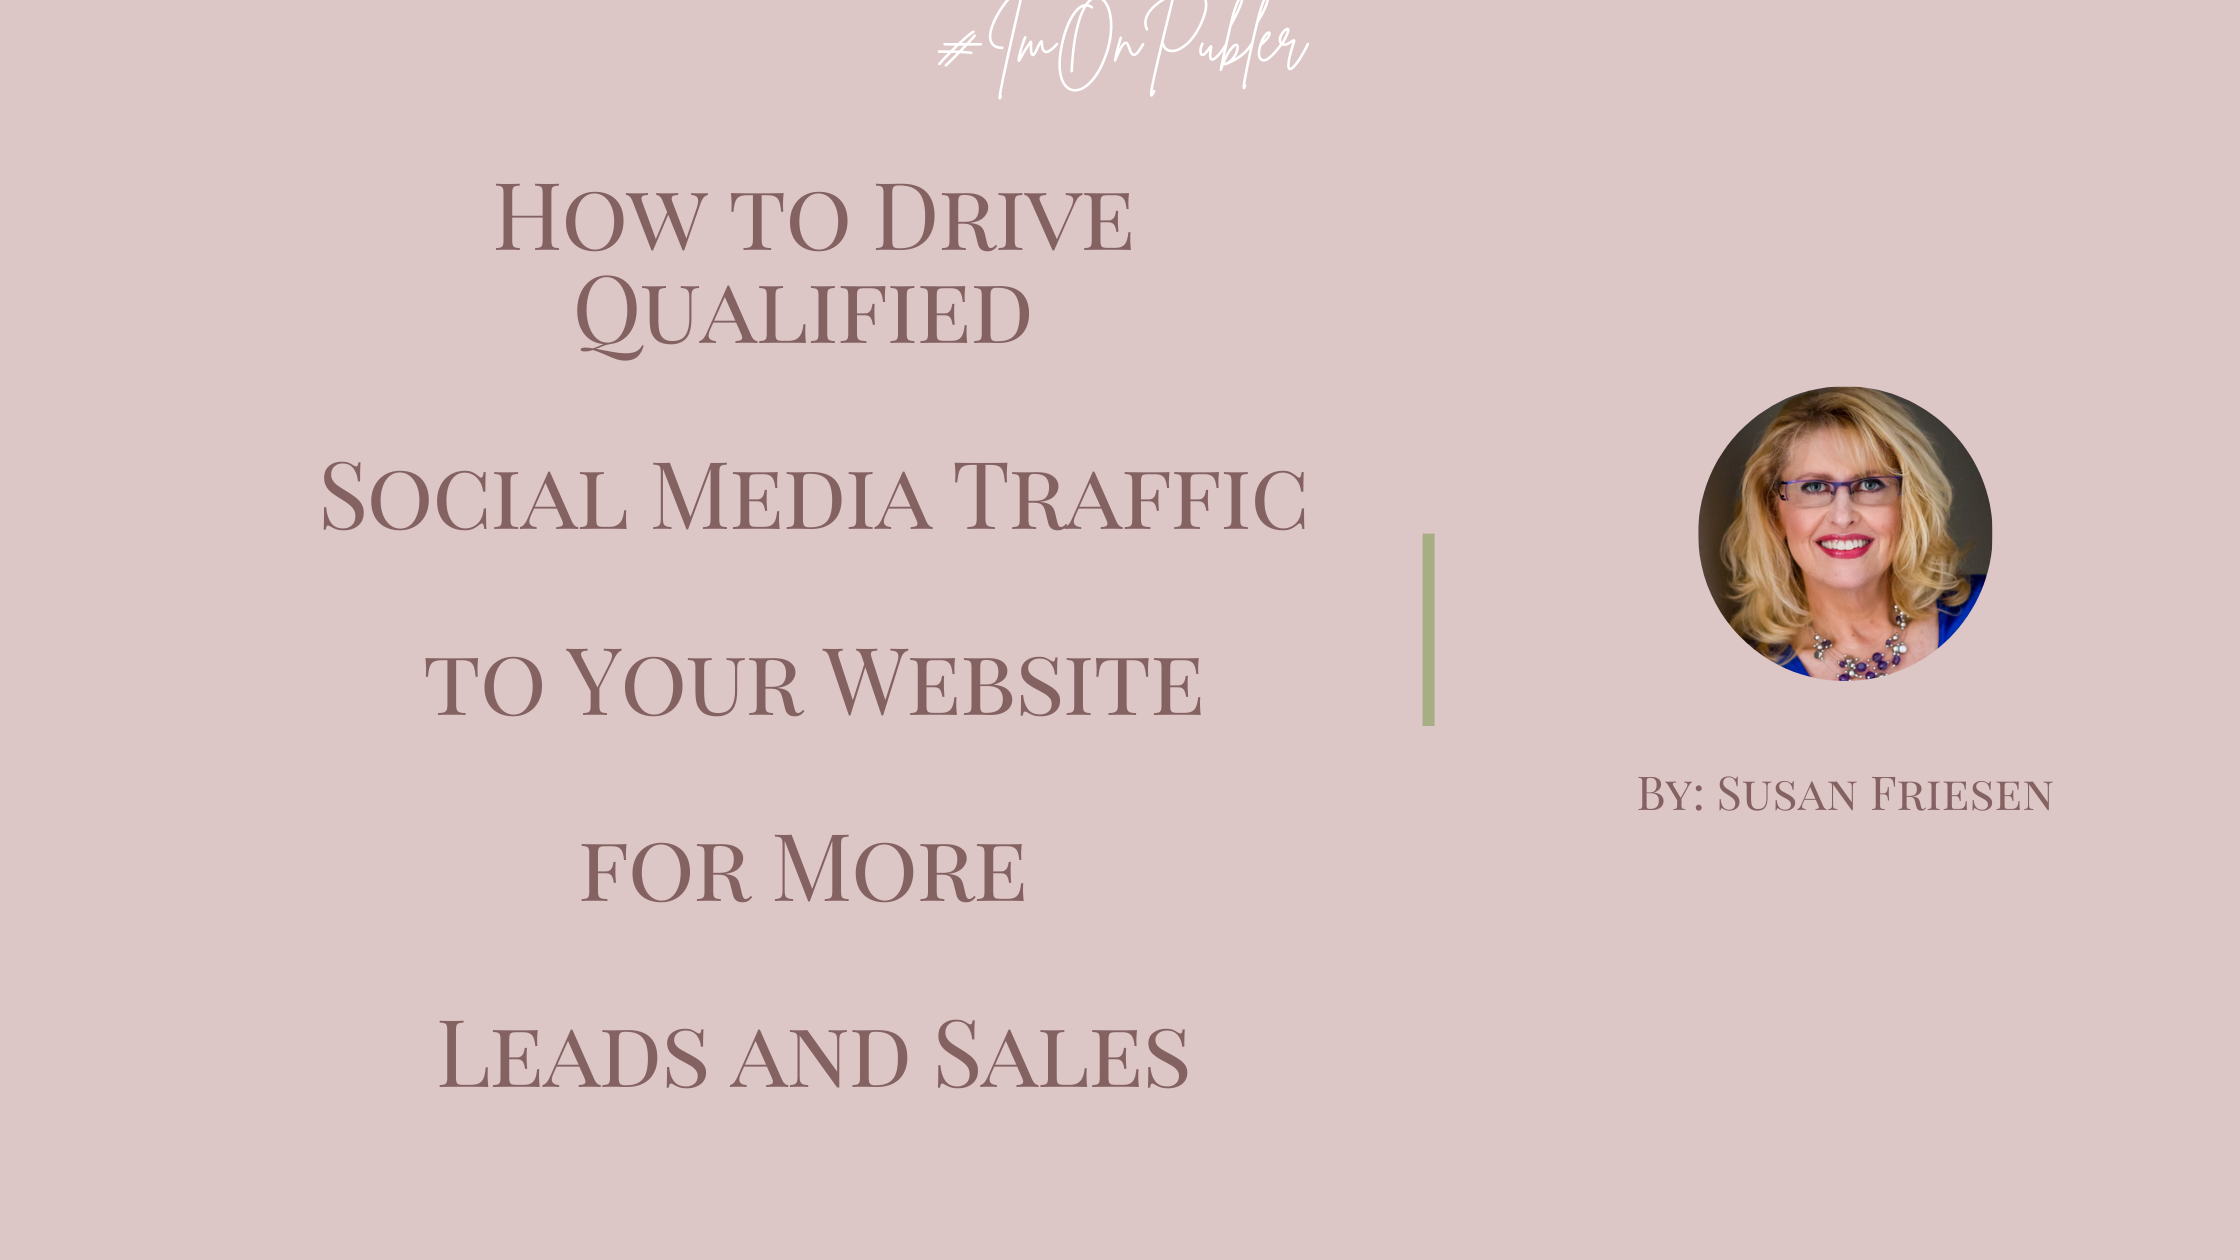 How to Drive Qualified Social Media Traffic to Your Website for More Leads and Sales bySusan Friesen